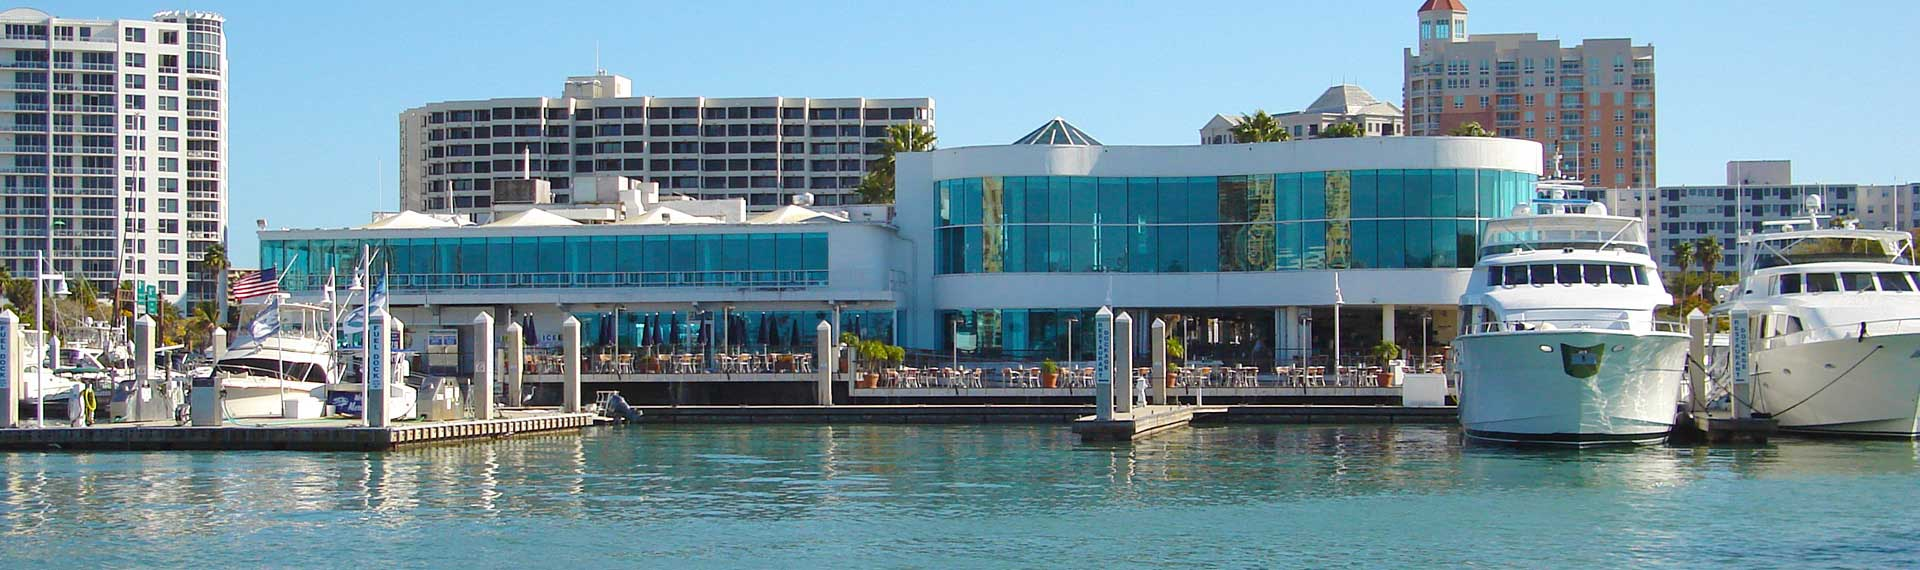 Sarasota Waterfront Restaurant